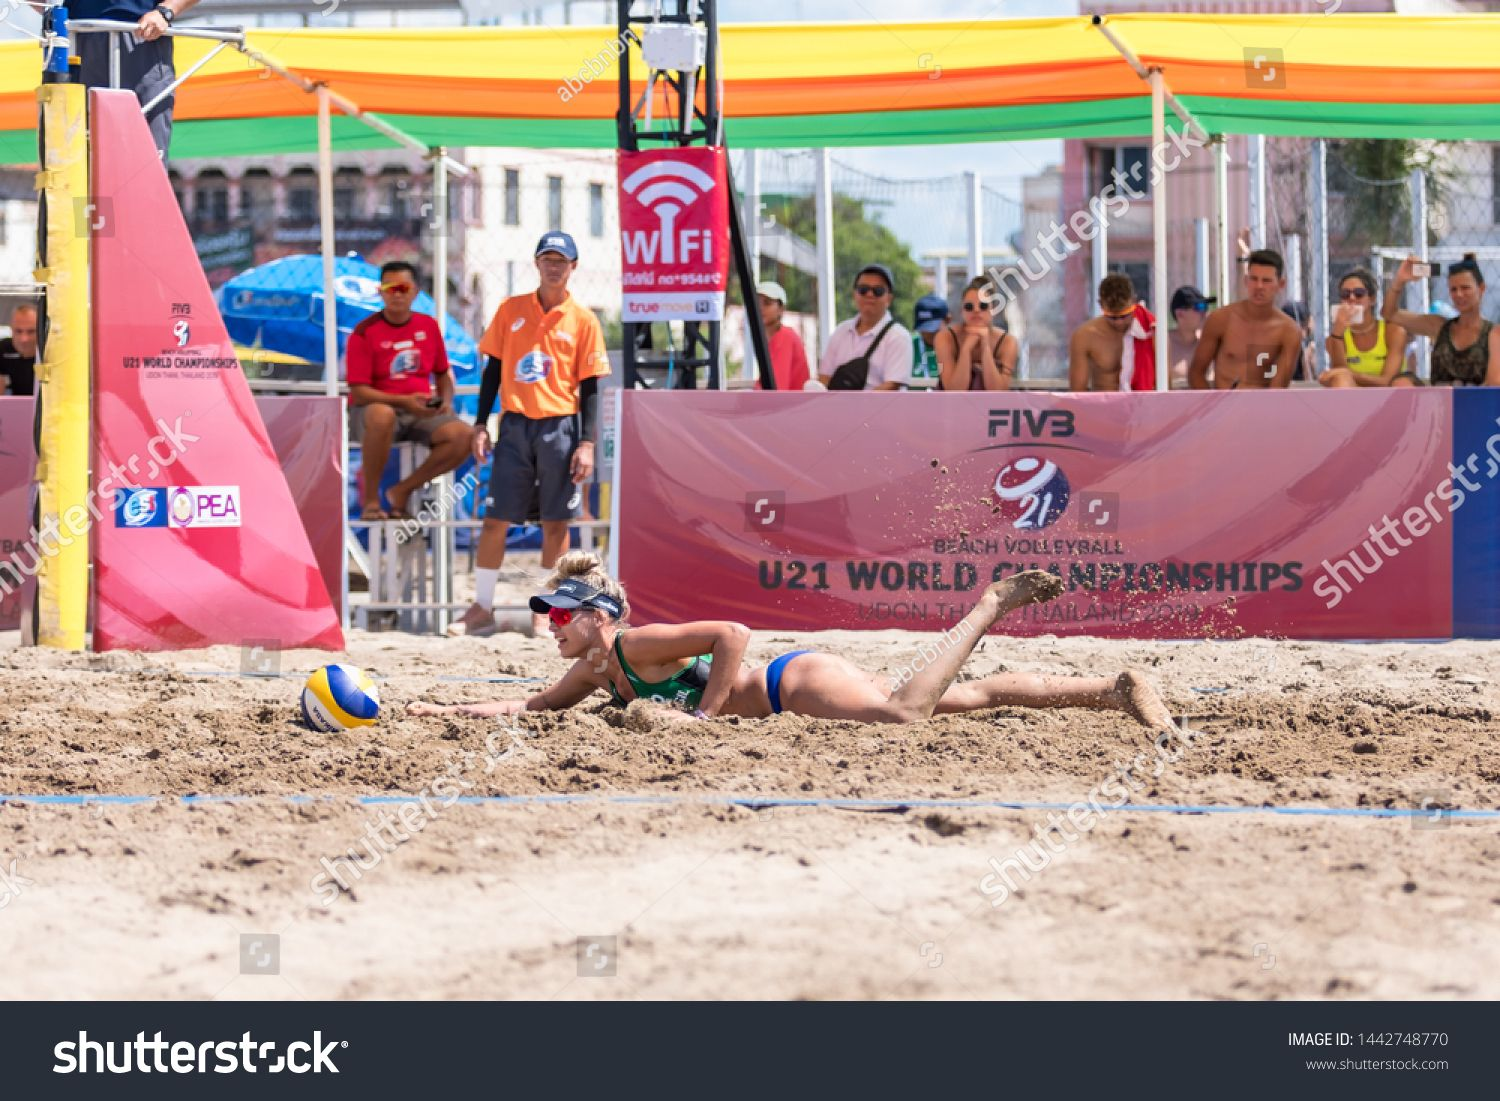 Udonthani Thailand June 20 2019 Beach Volleyball Players In Action Of U21 World Championships On June 20 20 Thailand Volleyball Players Beach Volleyball